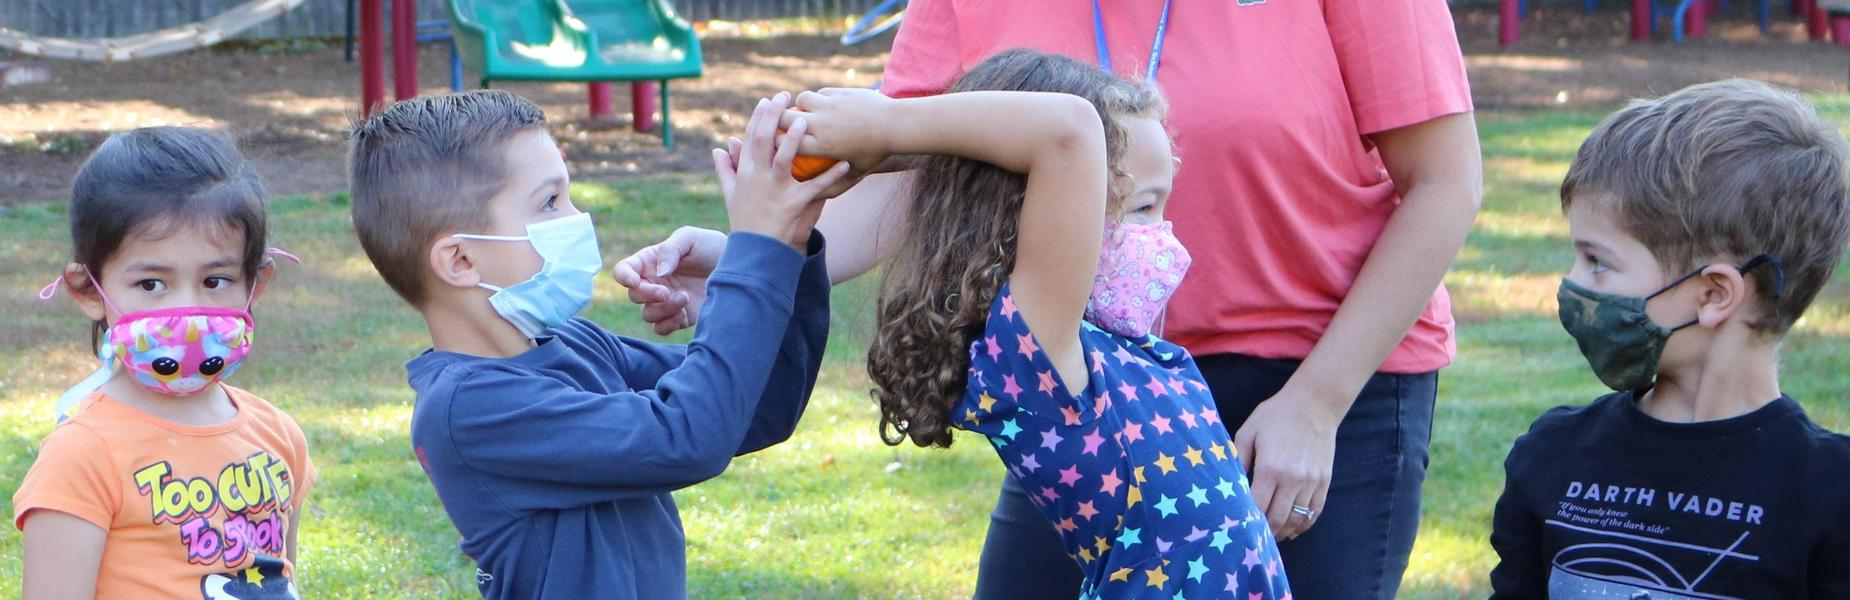 Photo of students passing small pumpkin as part of annual Pumpkin Patch festivities.